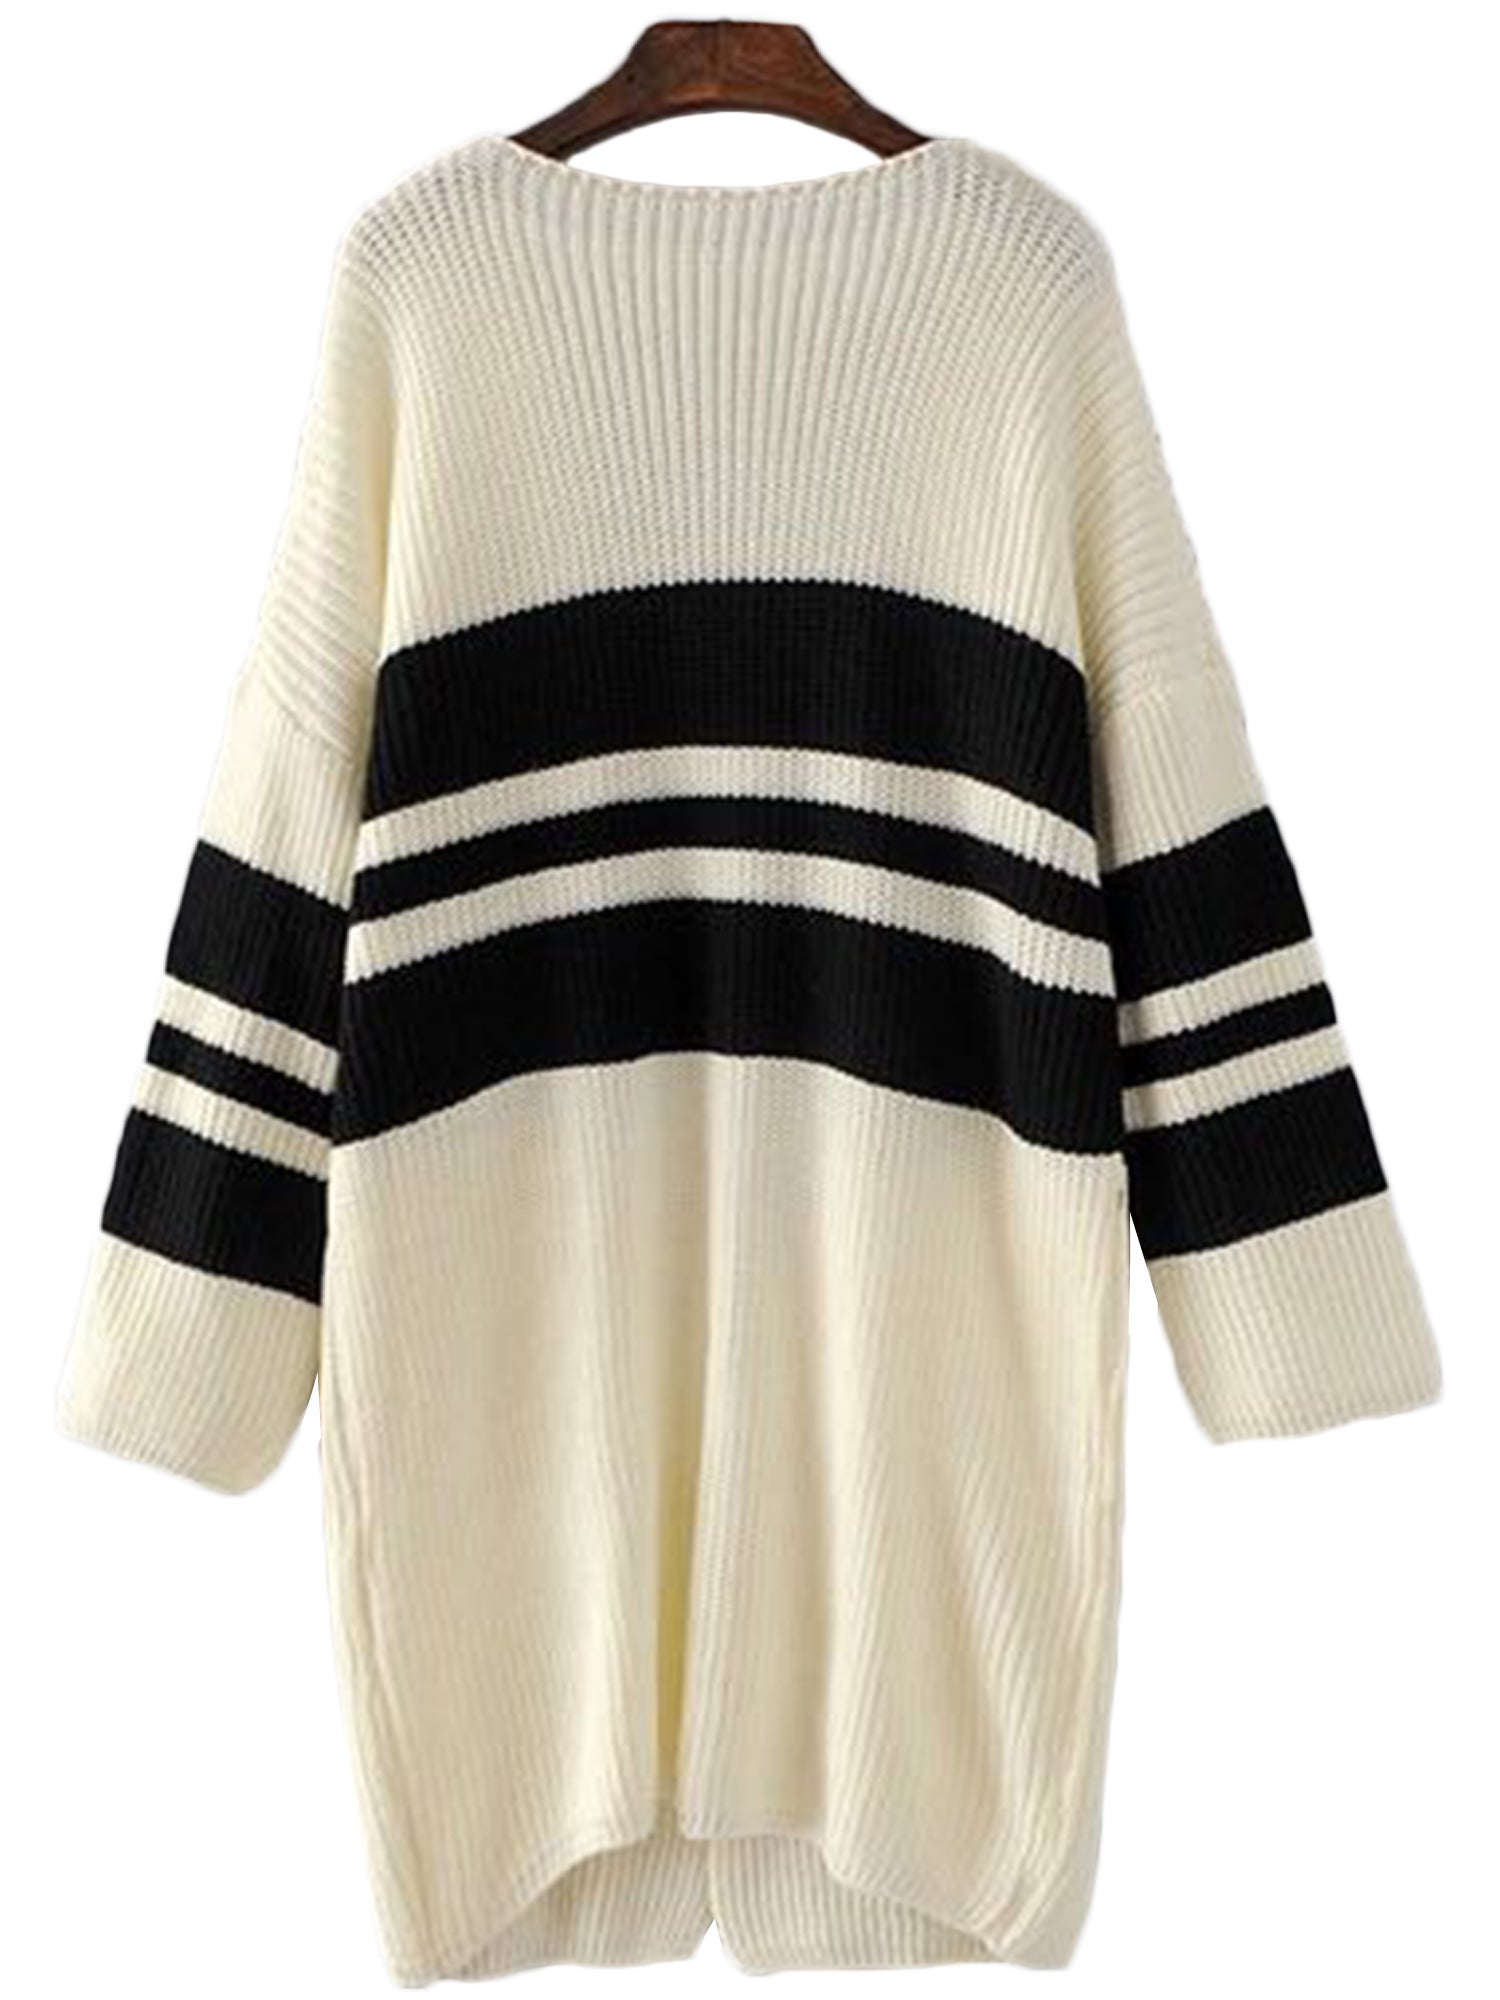 'Lois' Contrast Block Open Wrap Cardigan